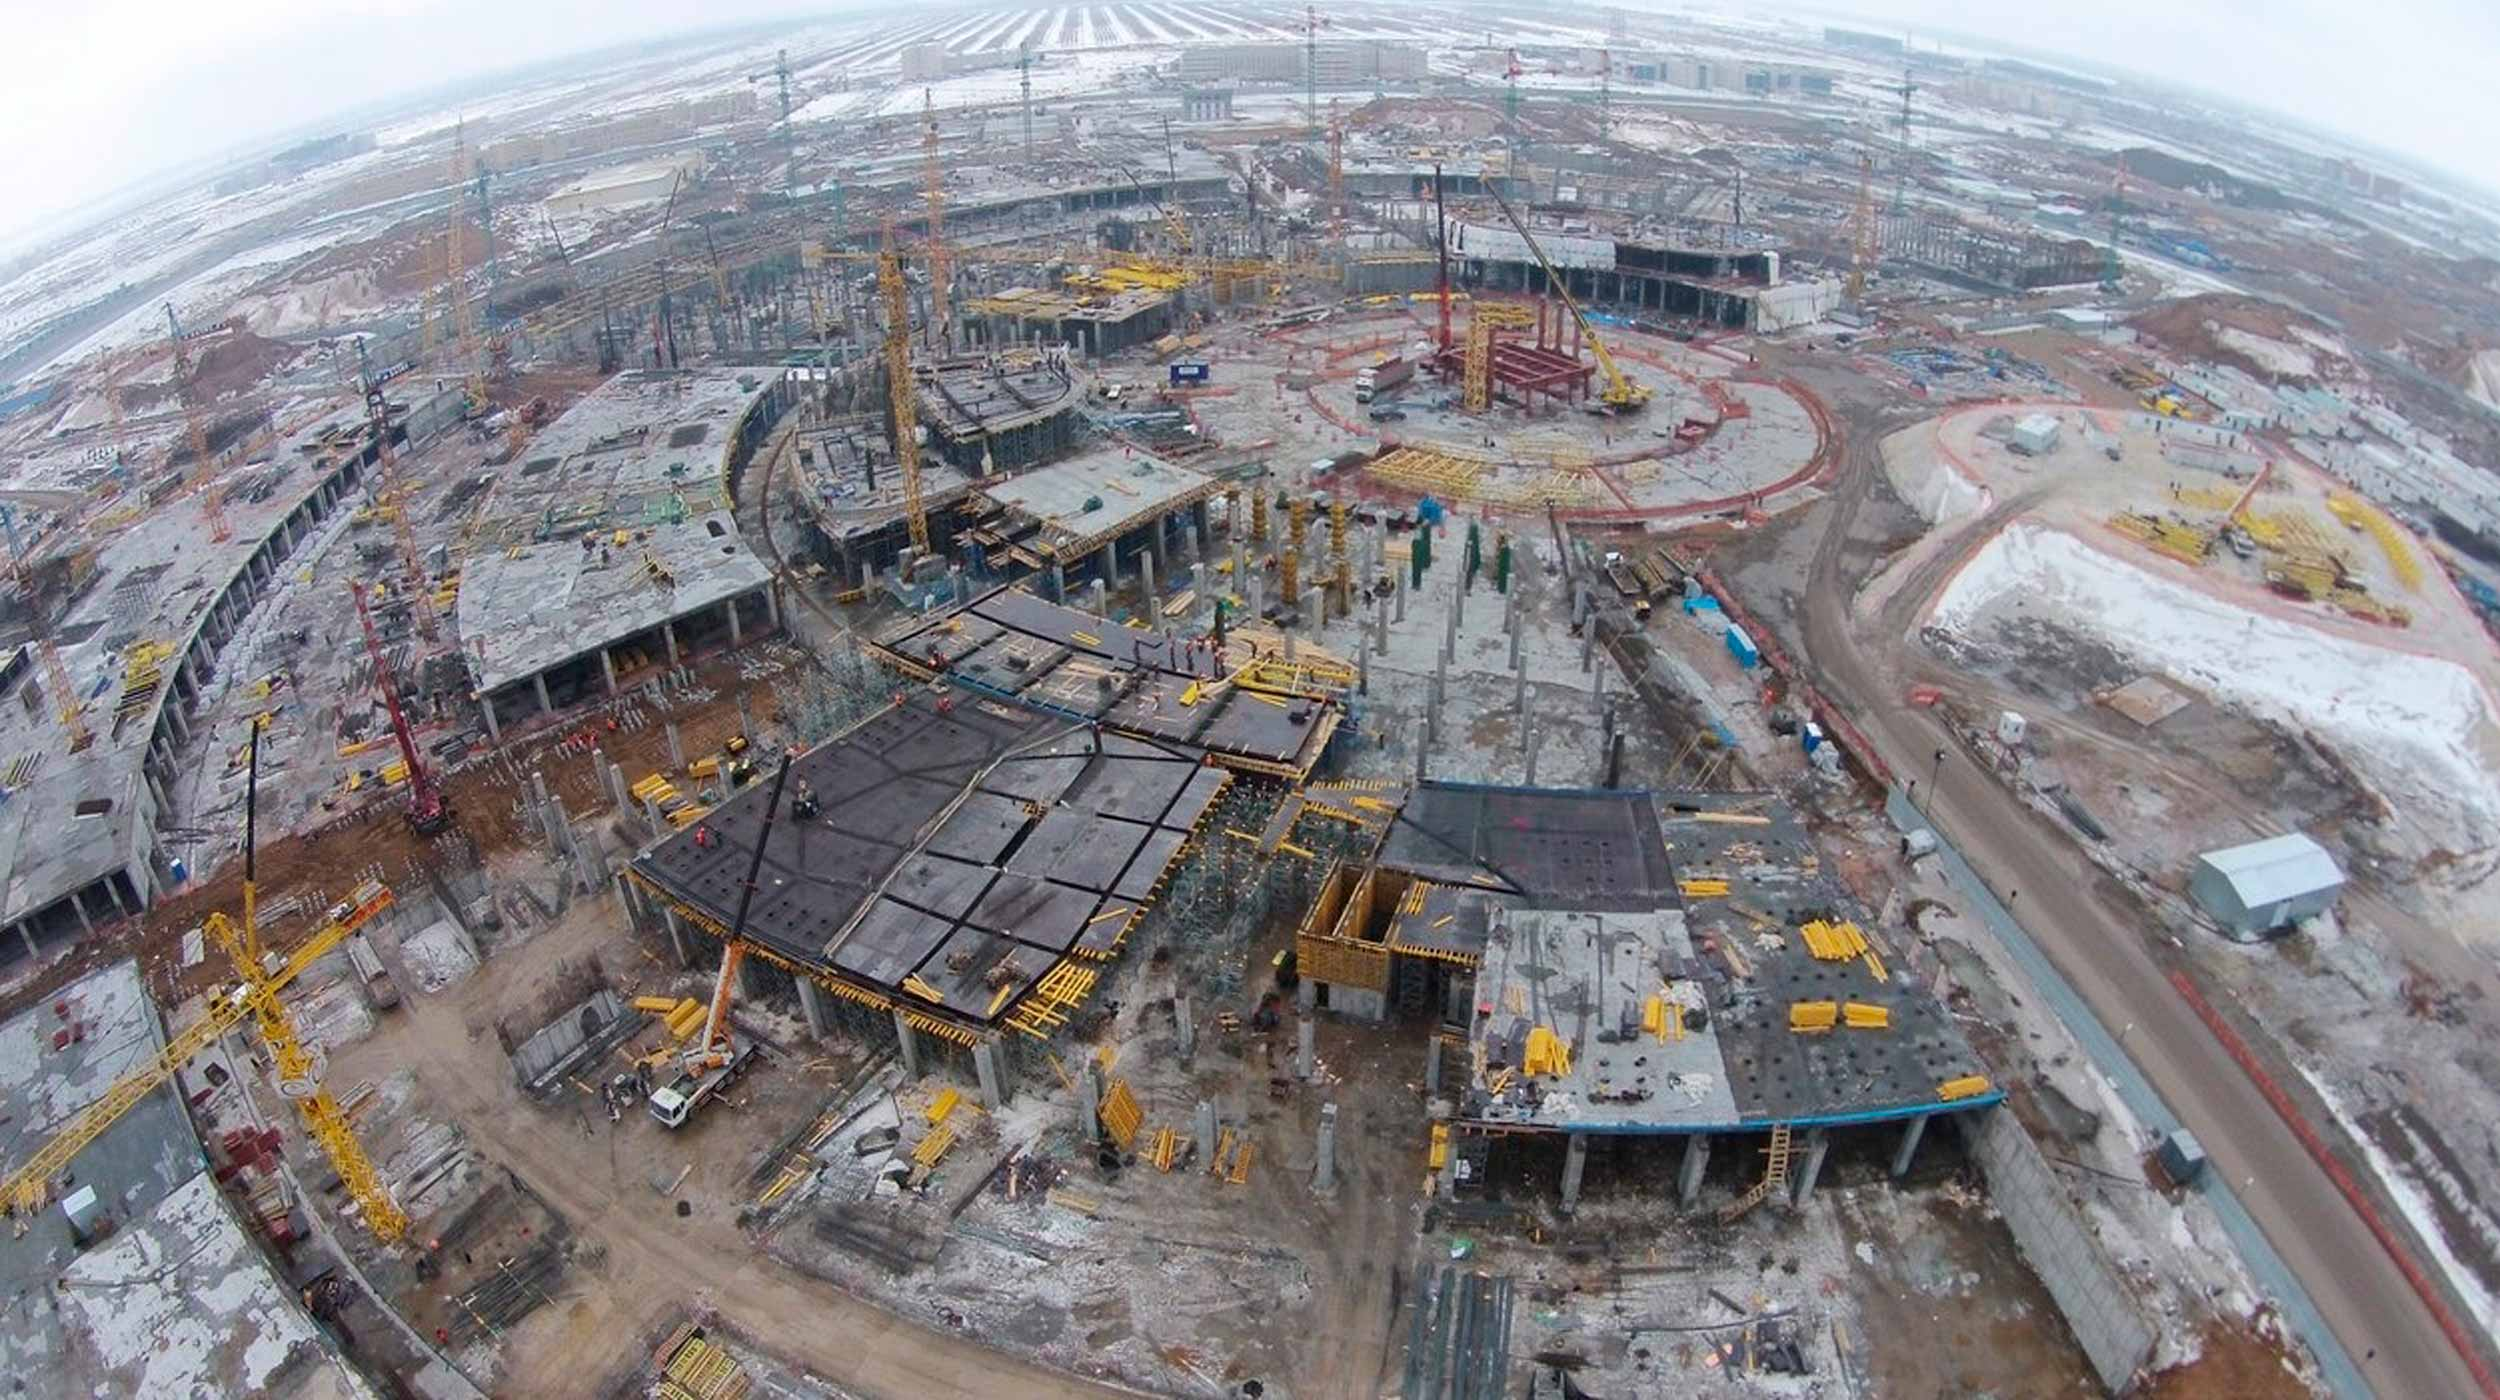 The largest and most experienced construction companies in Kazakhstan are participating in the construction of new structures and modernisation of the existing infrastructure.